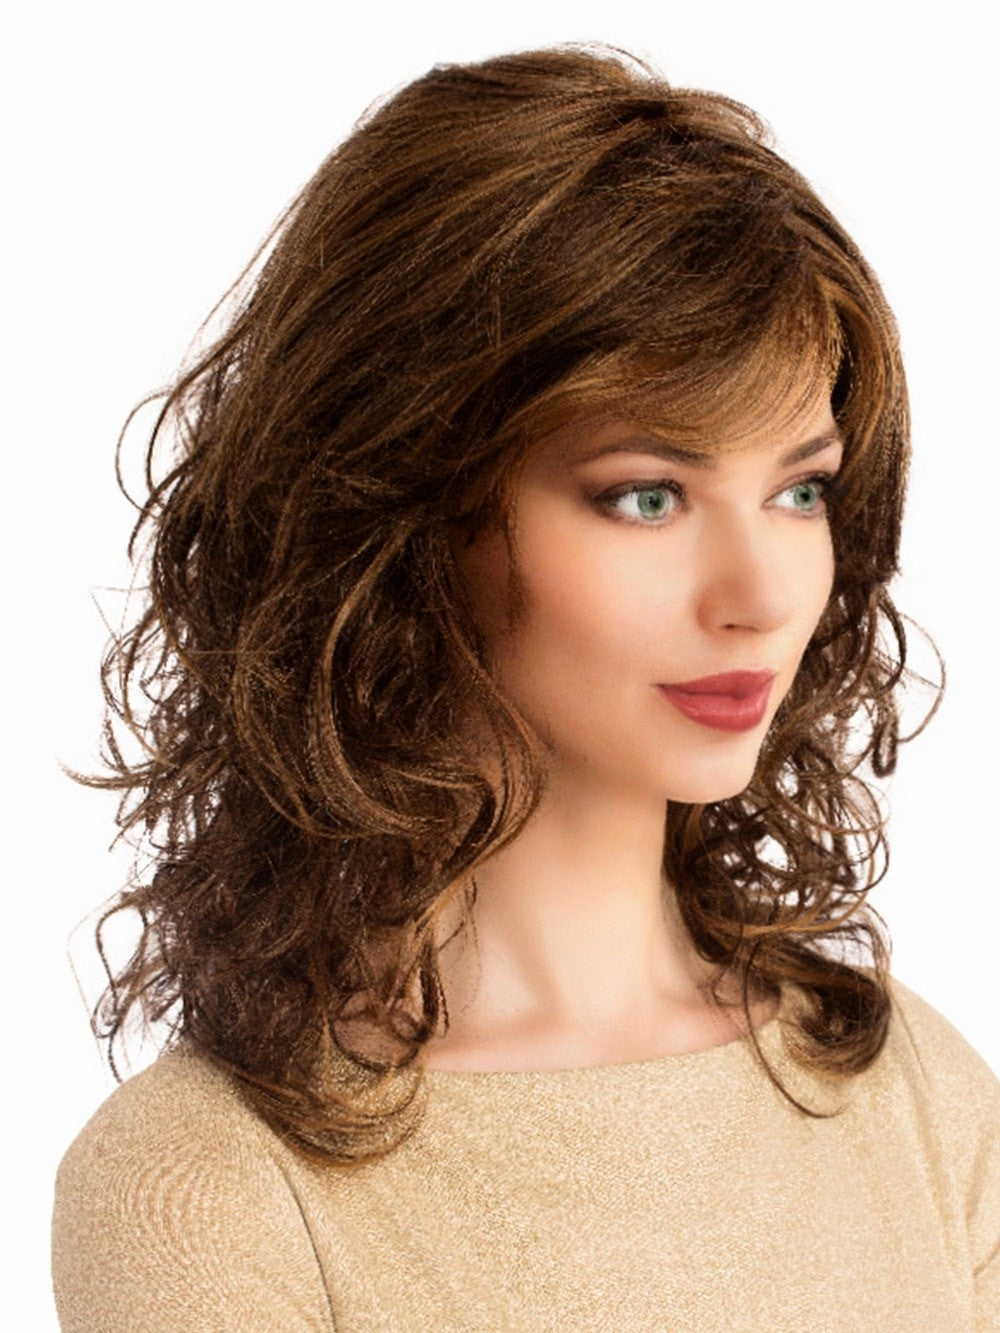 Long wavy curls on this synthetic wig, with a monofilament top, see video for details